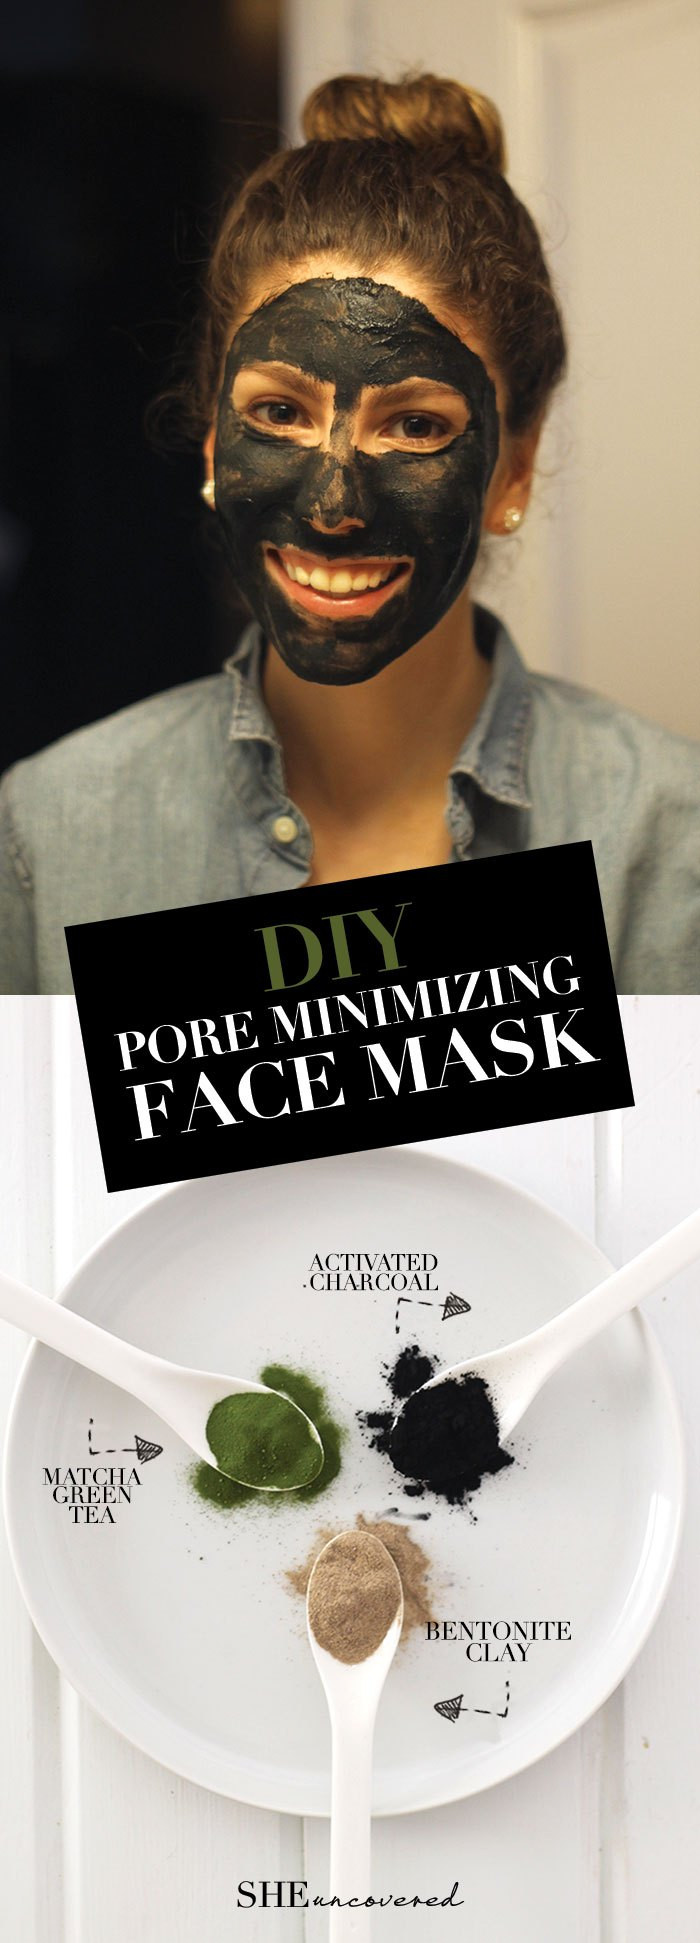 Best ideas about DIY Pore Mask . Save or Pin DIY Pore Minimizing Face Mask • She Uncovered Now.